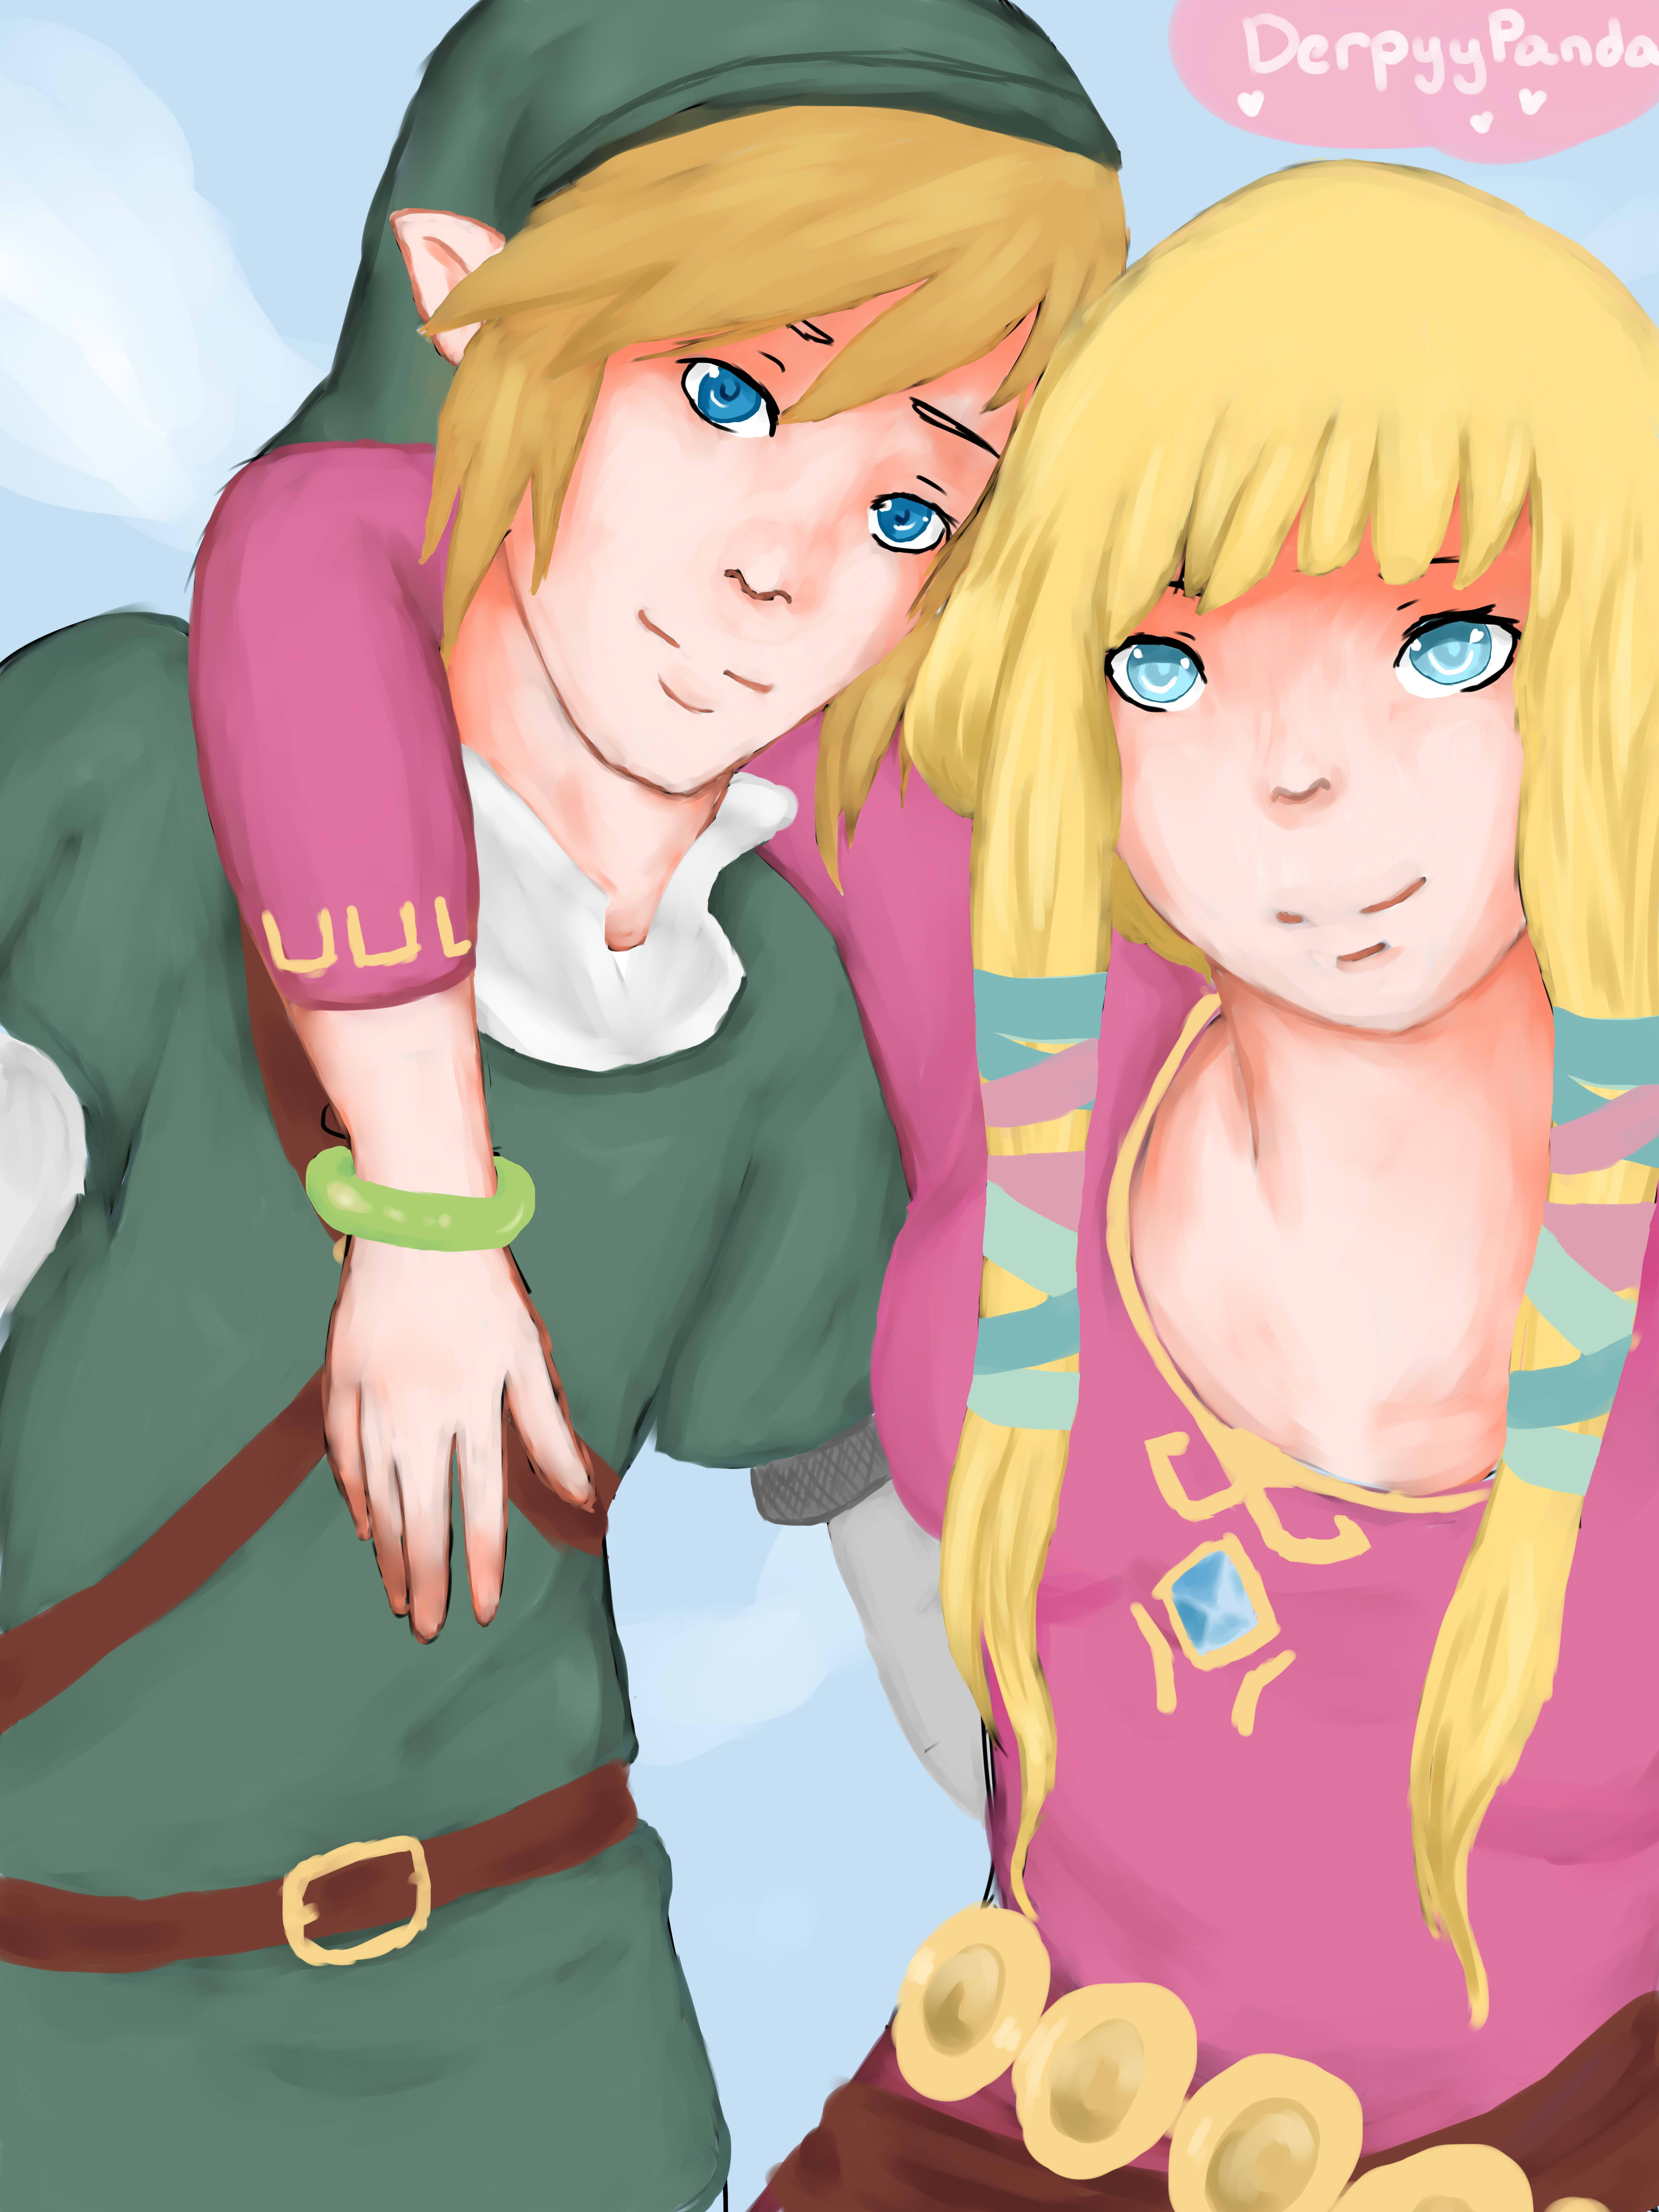 Link and Zelda by DerpyyPanda